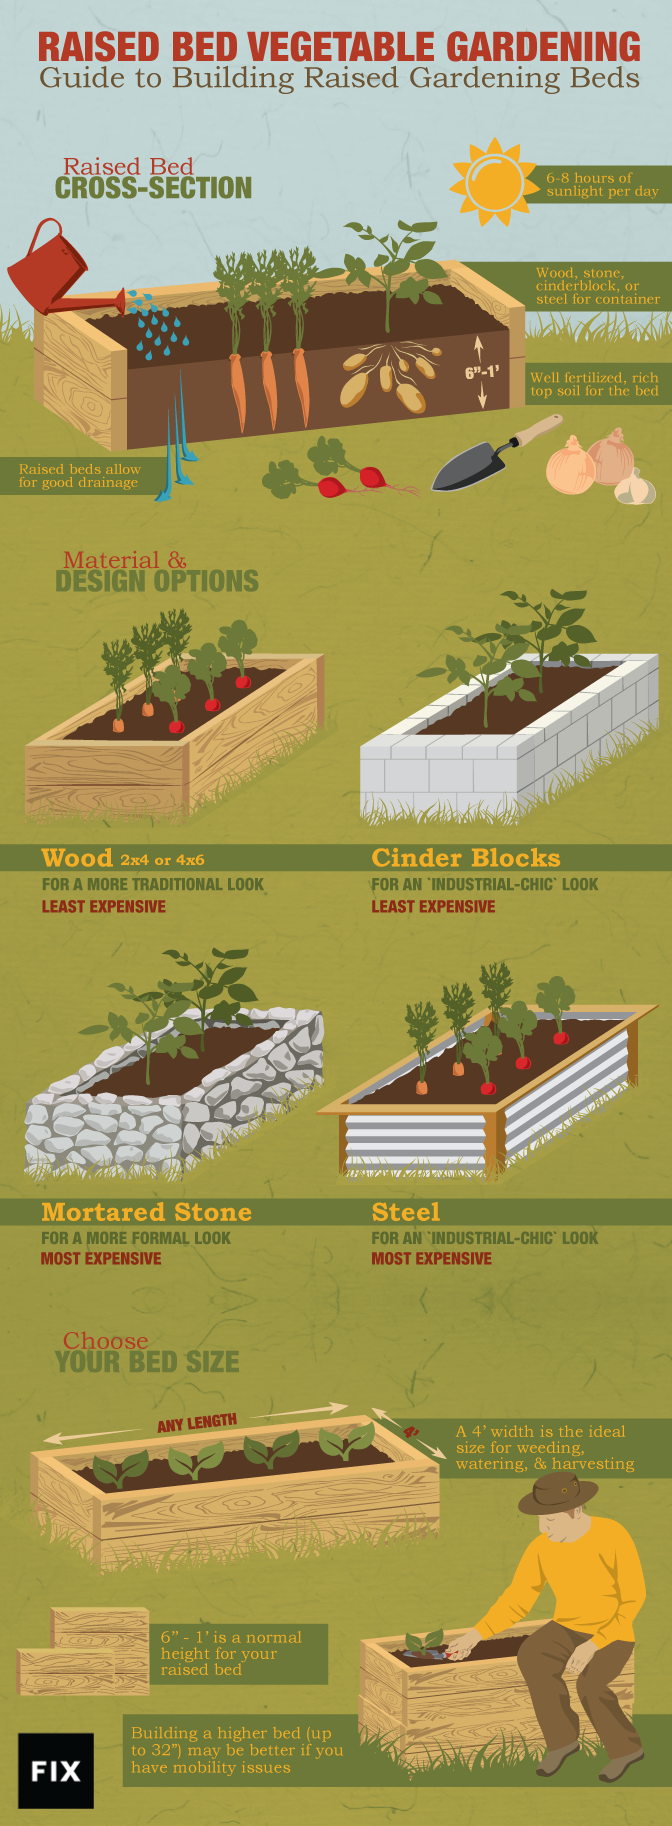 A Guide To Building Raised Gardening Beds Garden